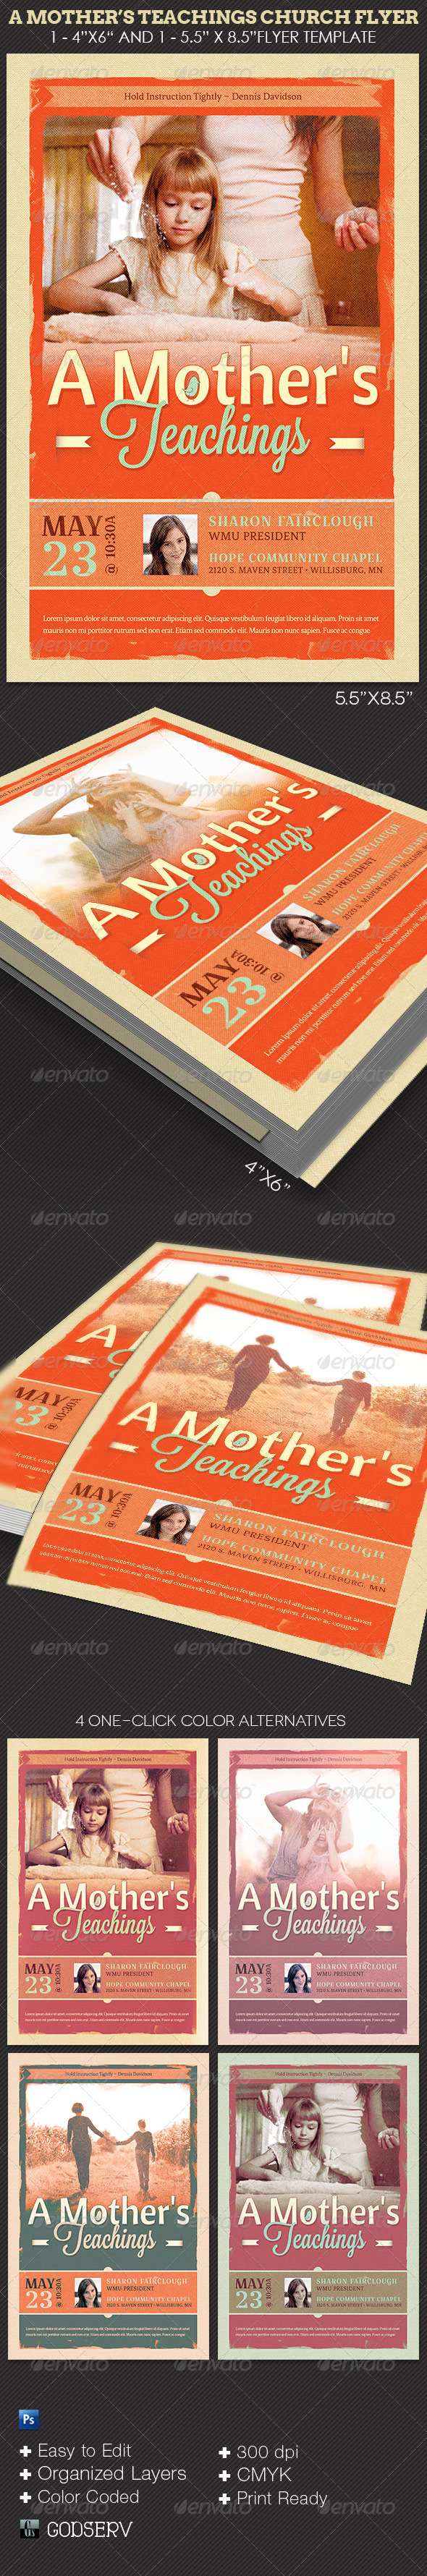 A Mother's Teachings Church Flyer Template - Church Flyers